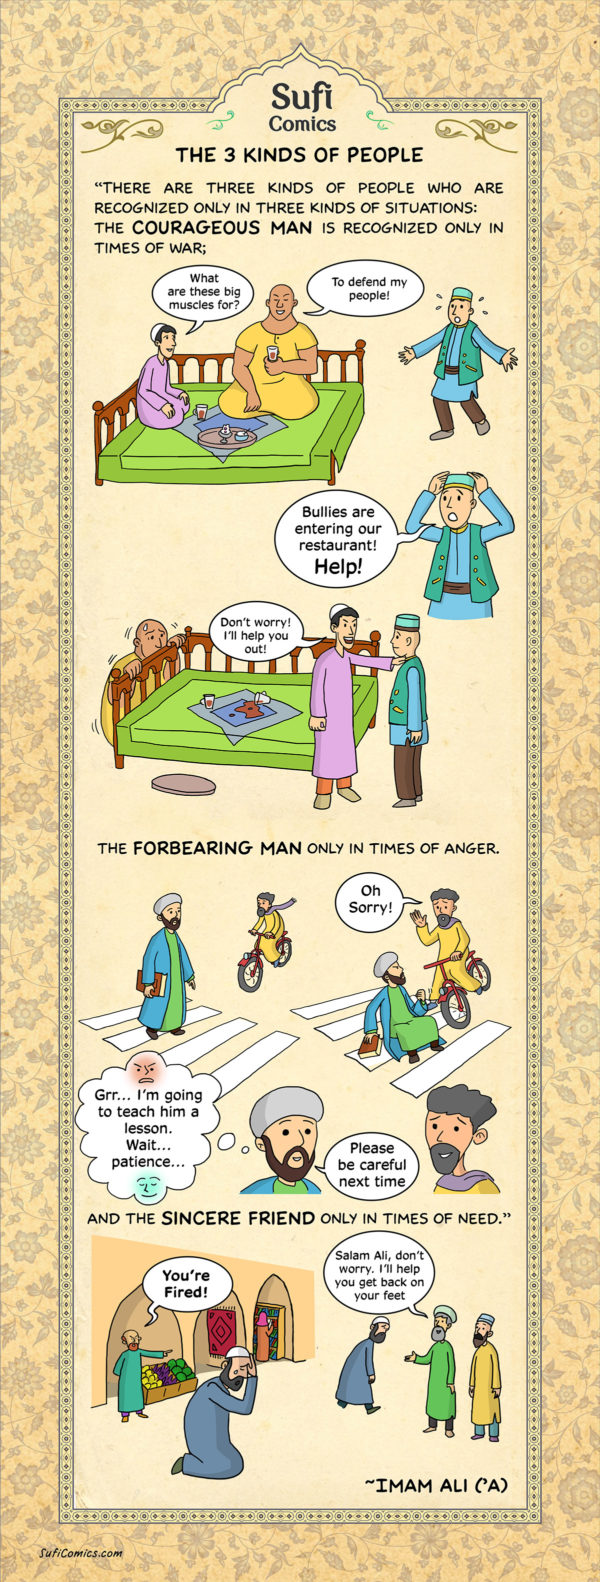 The 3 Kinds of People,Three kinds of People,3 kind of people,friends,think ,Hazrat Ali,Imam Ali,Muslims,Islamic Teachings,Islamic Teaching,Sufi Comic,Sufi,Comic.Islamic Comic